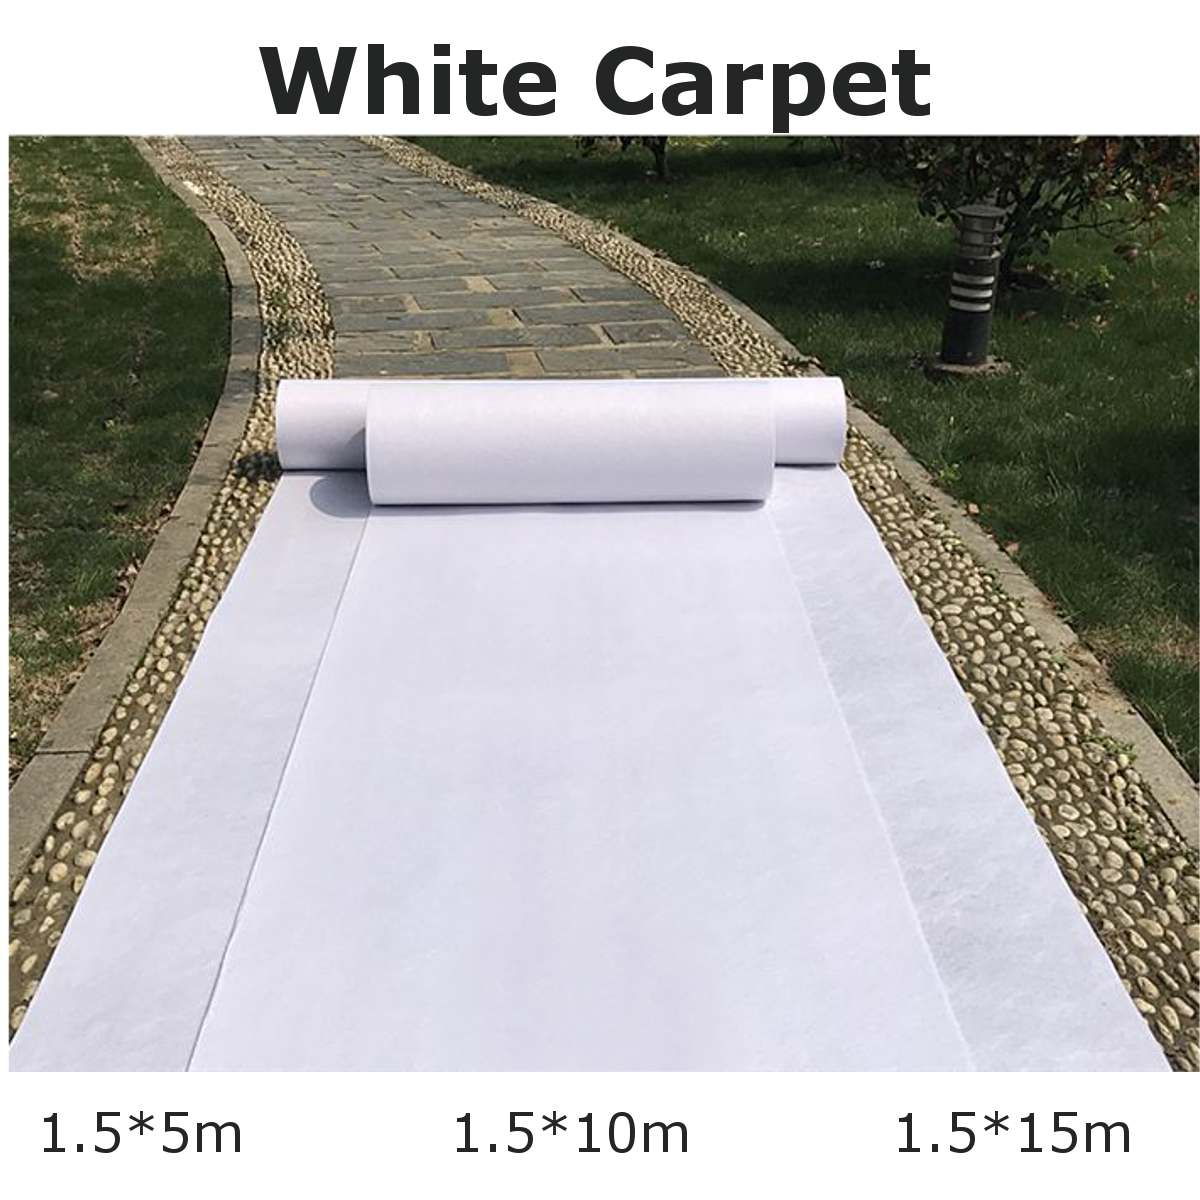 1.5x15/10/5m New Wedding Carpet White Carpet Aisle Runners Party Stage Banquet Celebration Film Festival Event Outddor Decor Mat